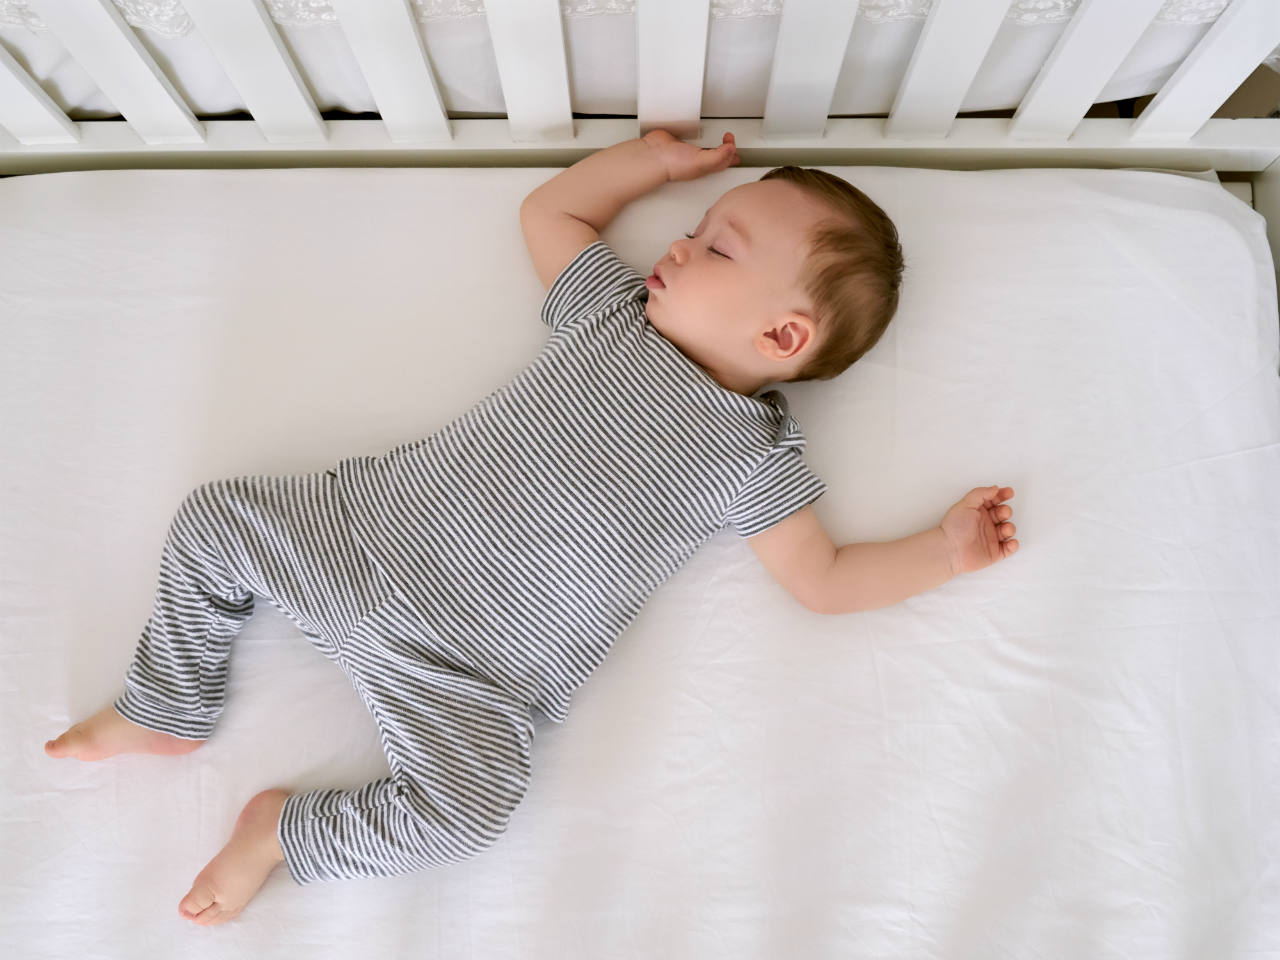 Here are some easy ways to help your baby get sound sleep